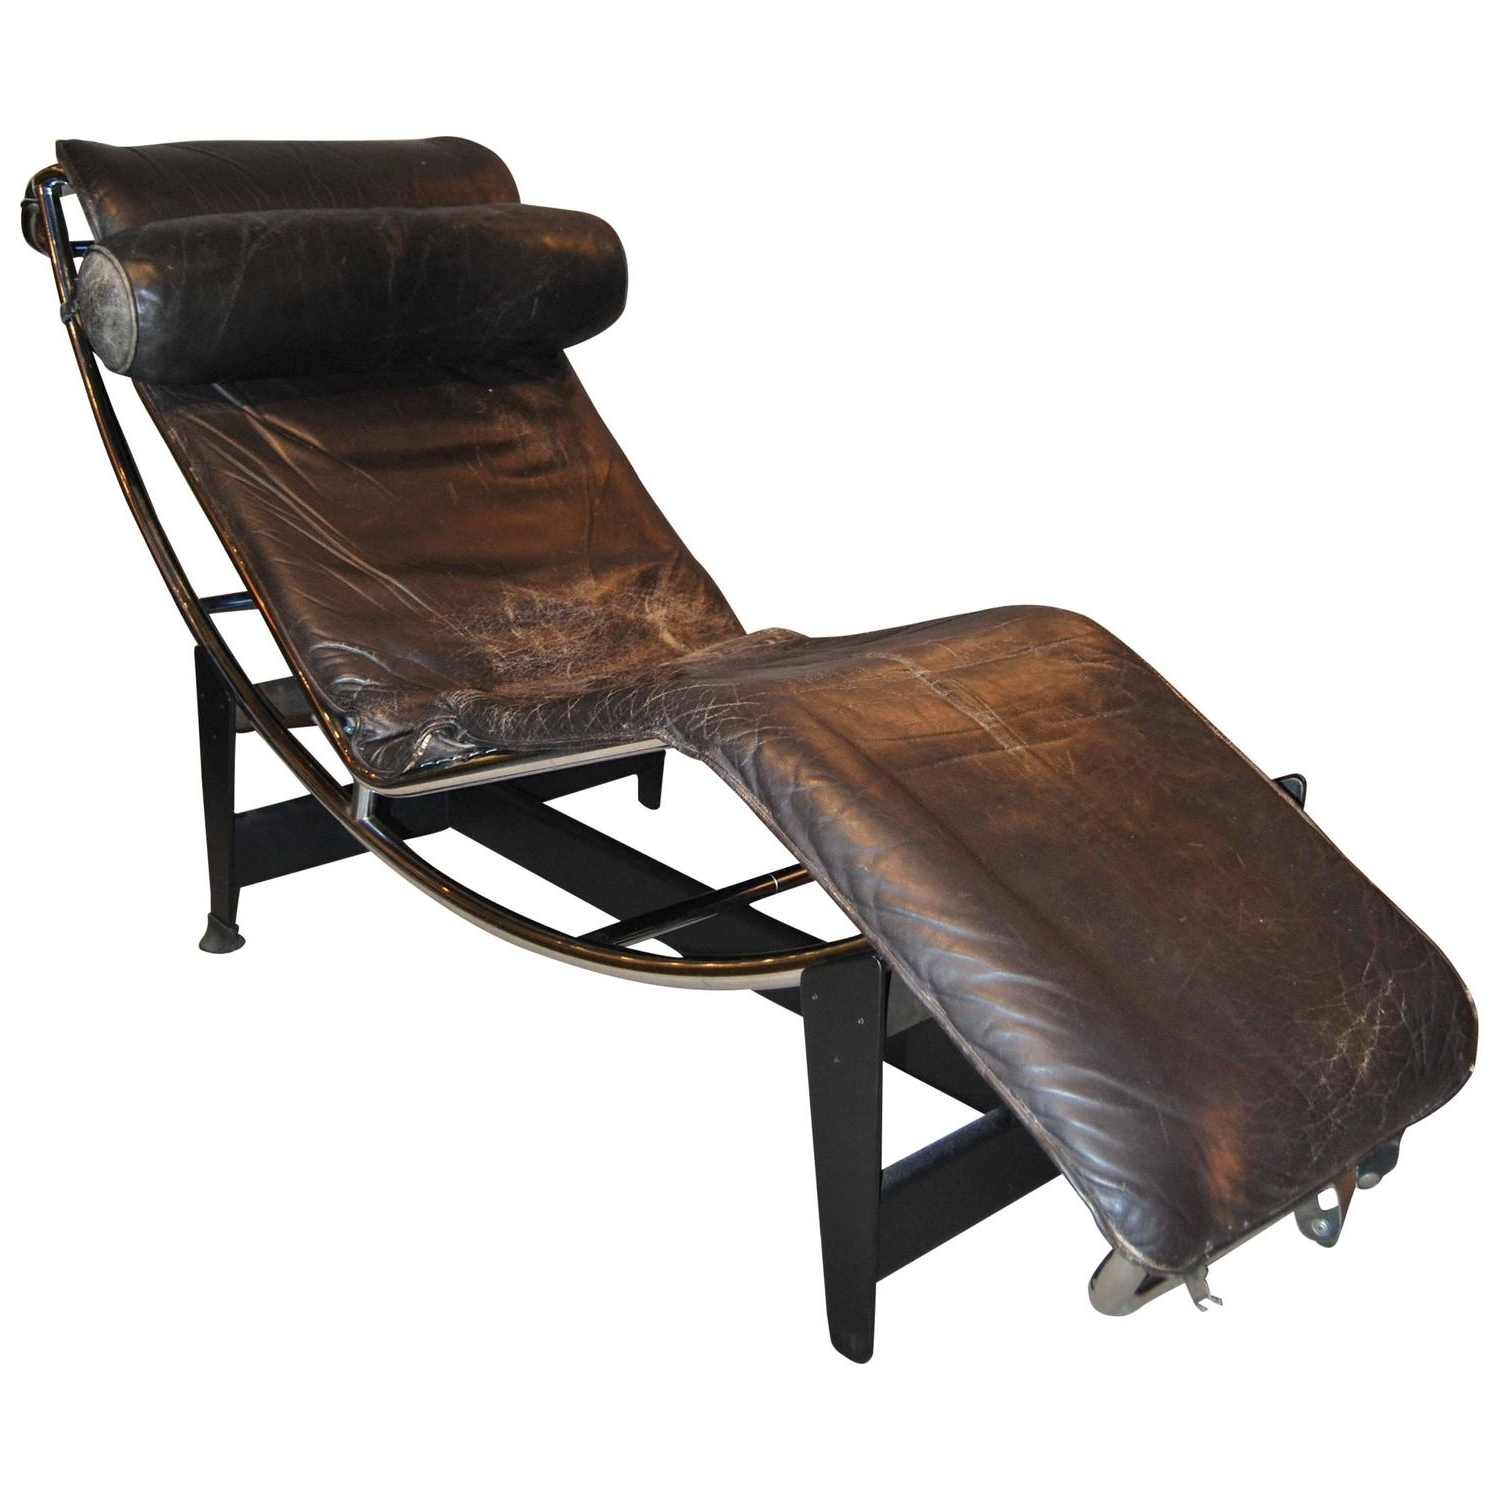 Early Le Corbusier/jeanneret/perriand Lc4 Chaise Lounge For Sale In Trendy Lc4 Chaise Lounges (View 4 of 15)